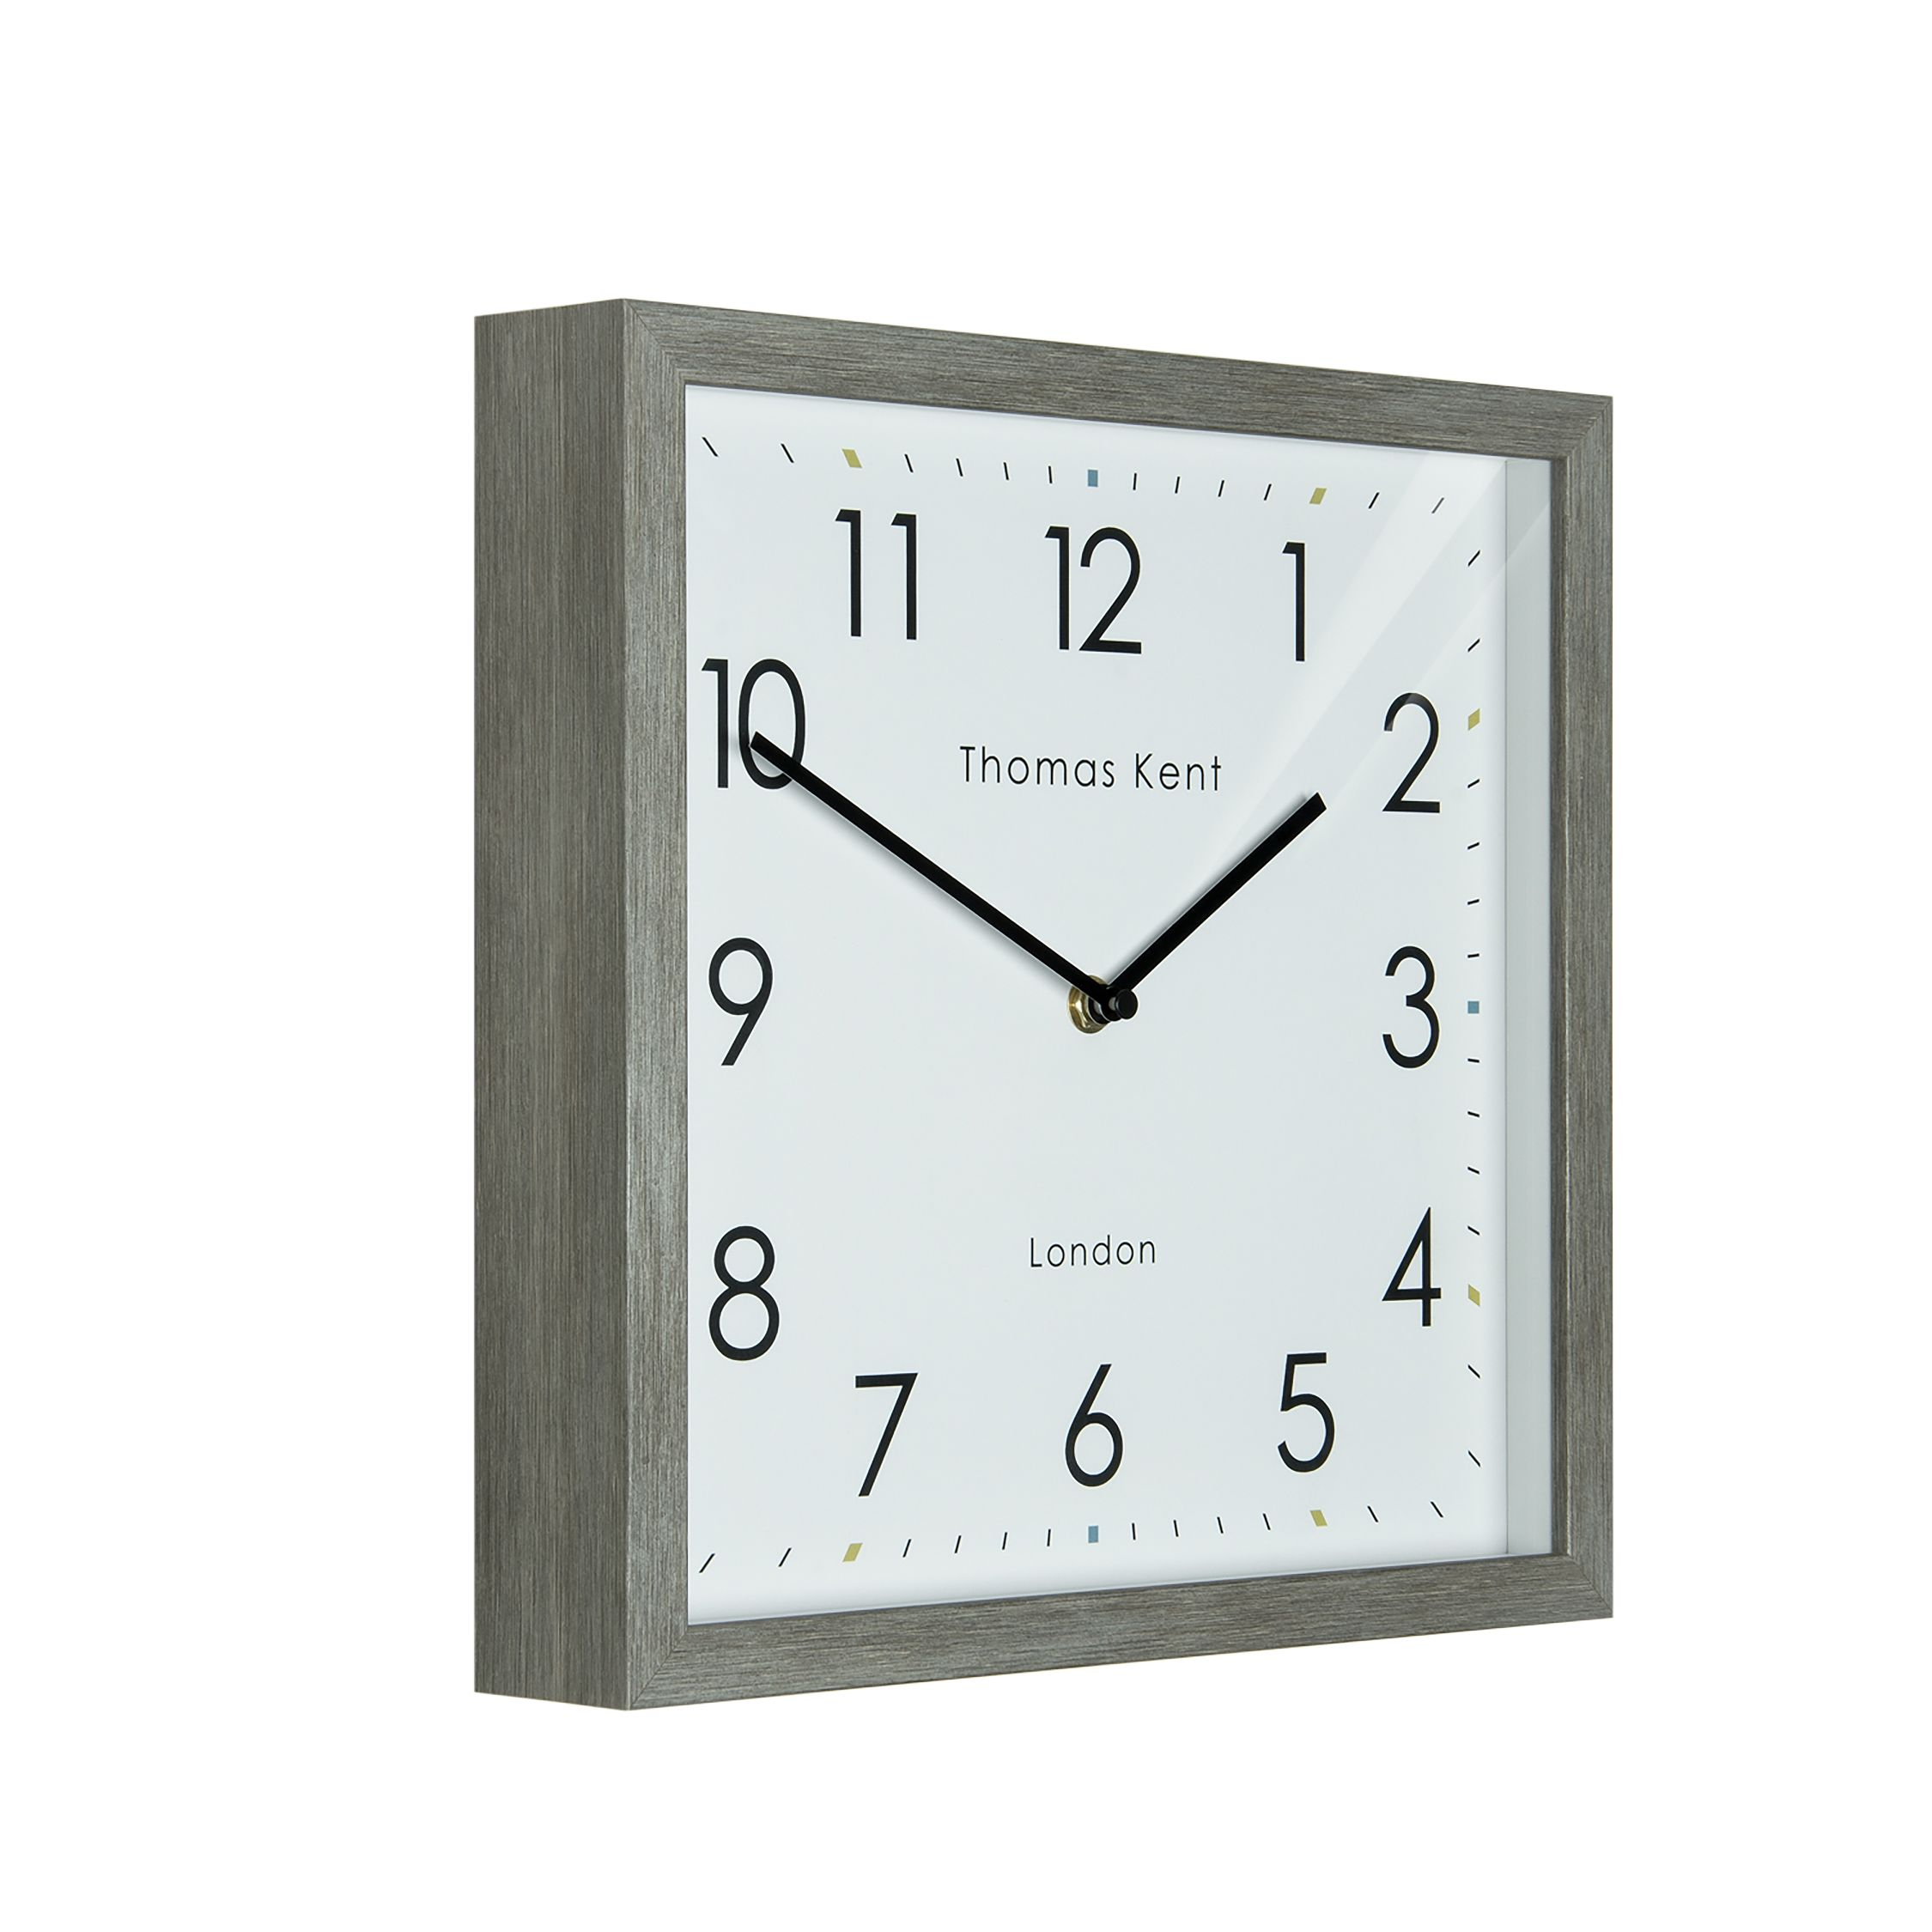 Smithfield Wall Limestone 40 00 Our New Profile The Smithfield 12 Wall Clock Is Elegant Contemporary And Available In A Cl Clock Wall Clock Limestone Wall